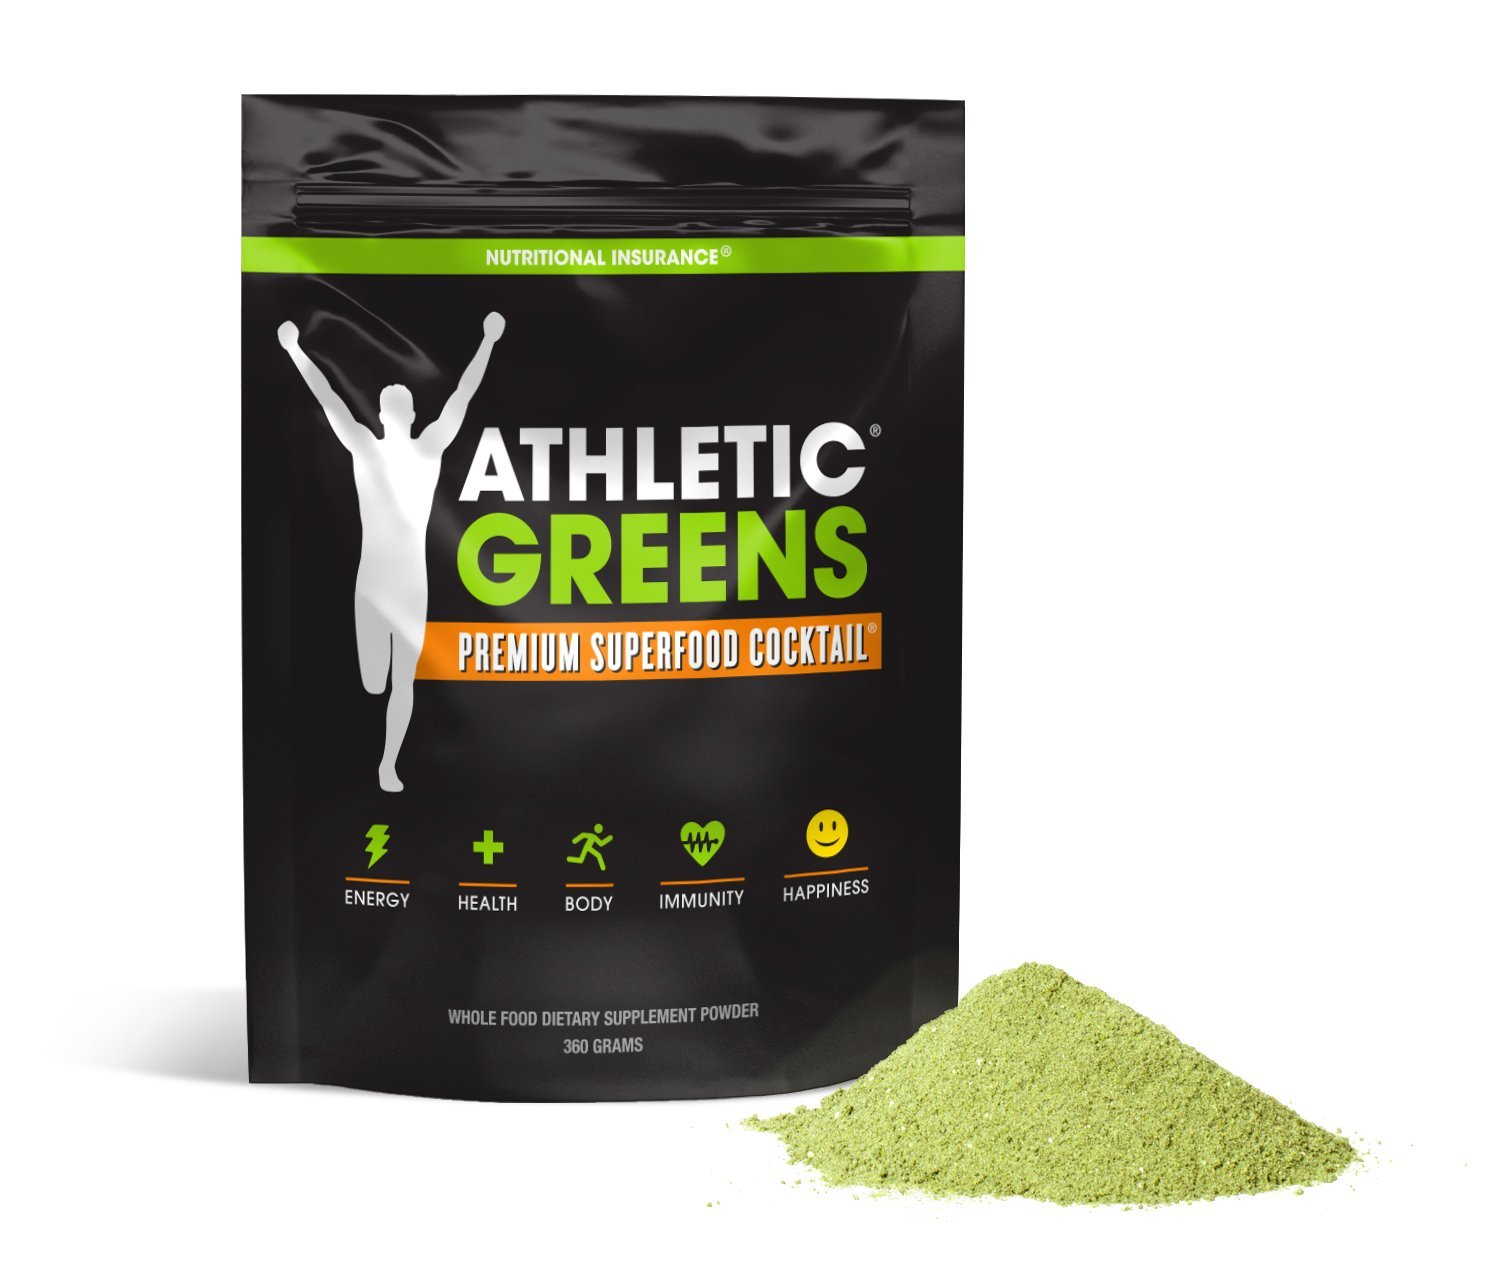 athletic greens premium superfood cocktail